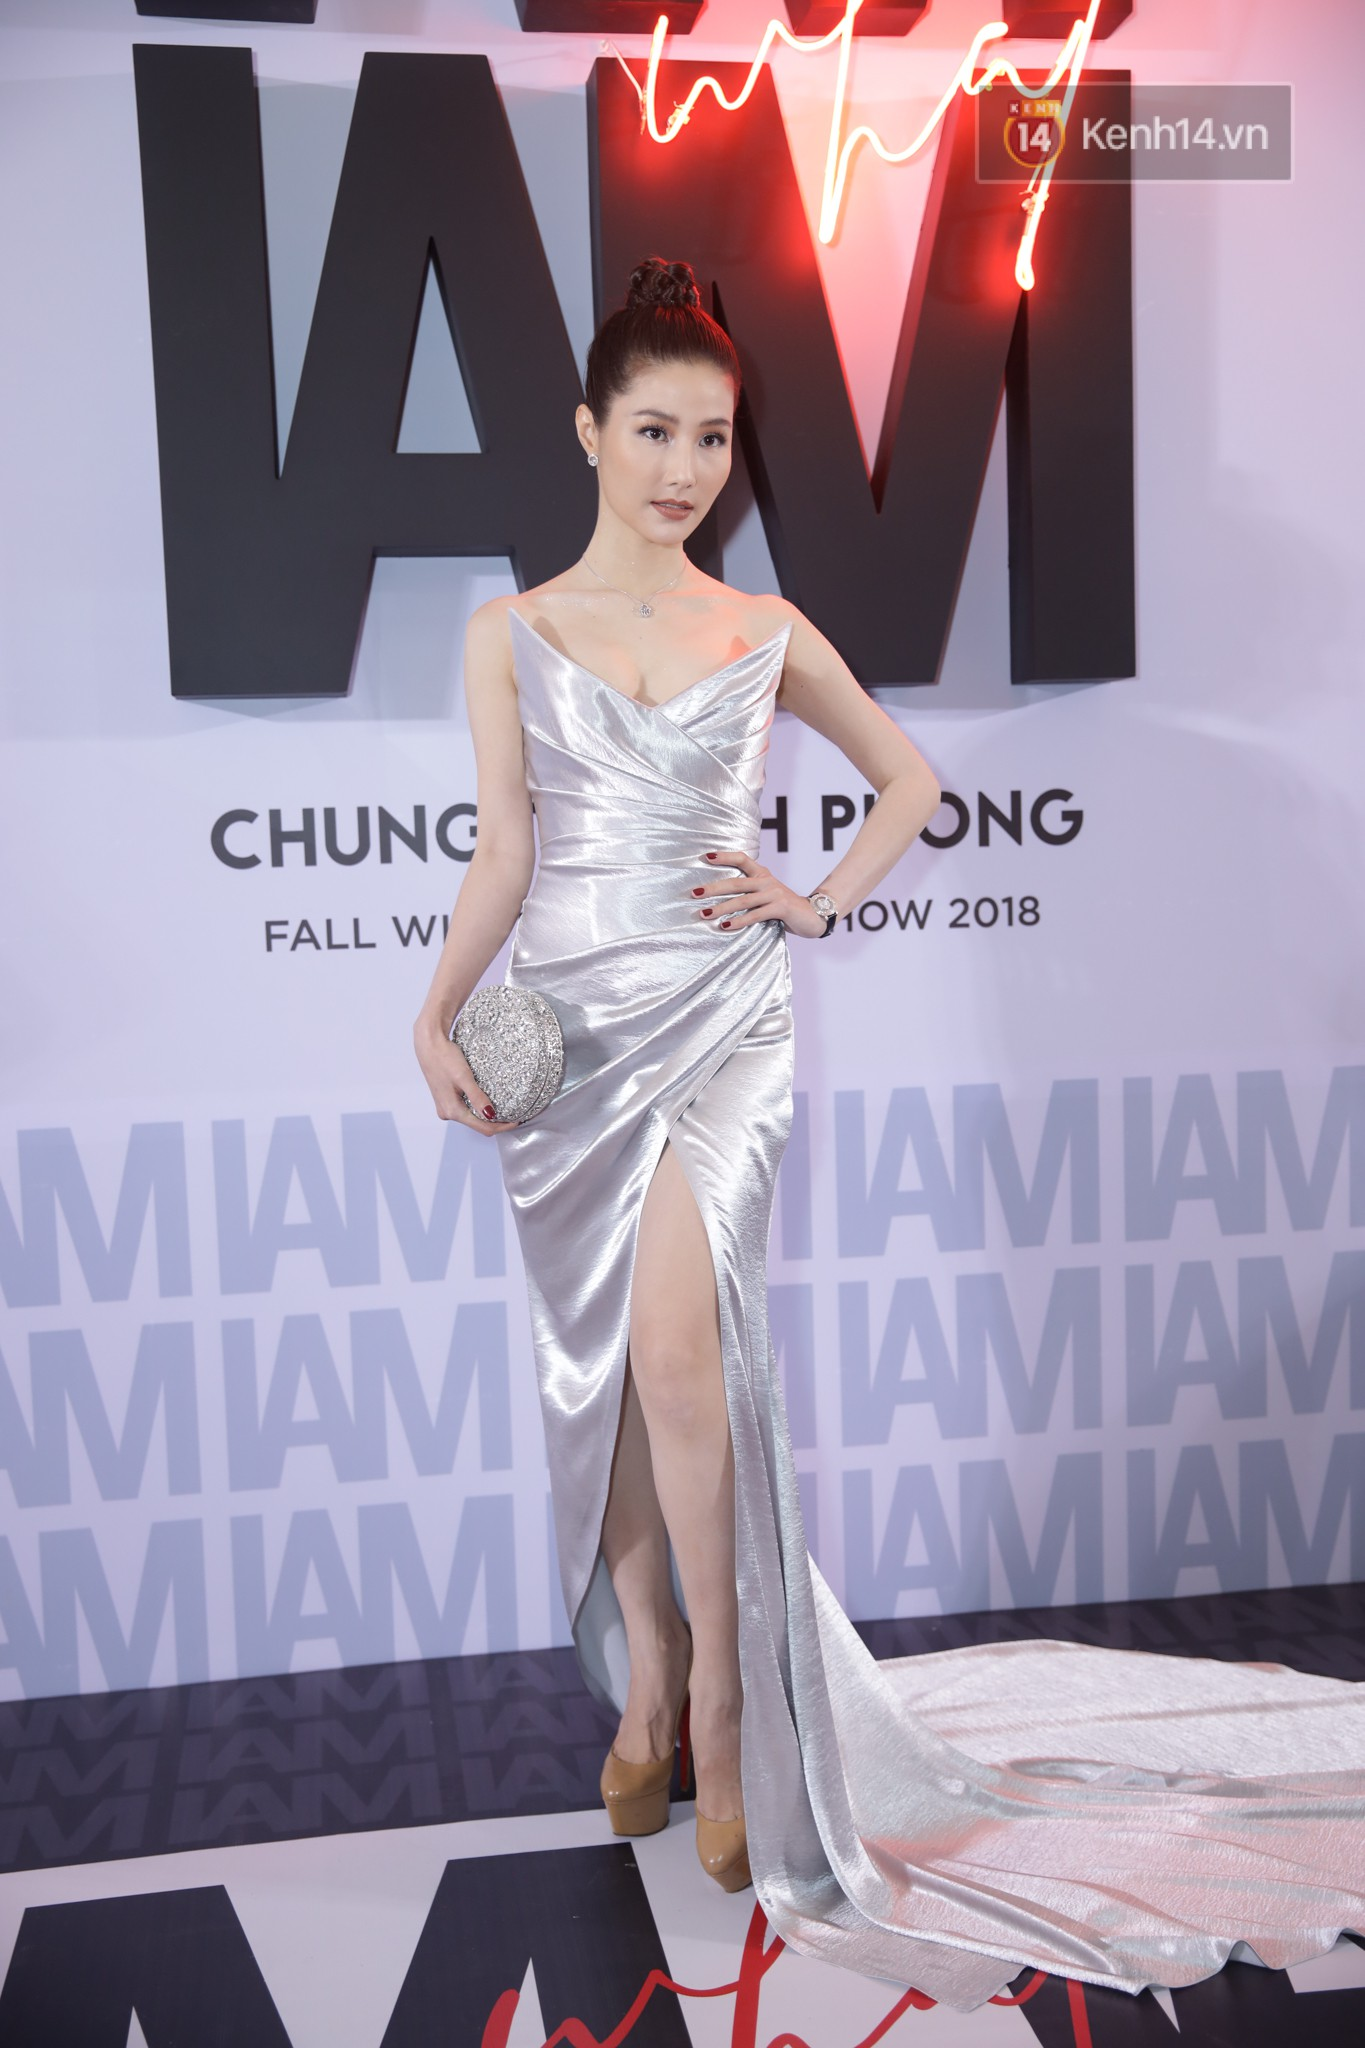 The red carpet Chung Thanh Phong show: it was able to test strange styles, Quỳnh Anh Shyn caught the spiders with rain - Photo 9.